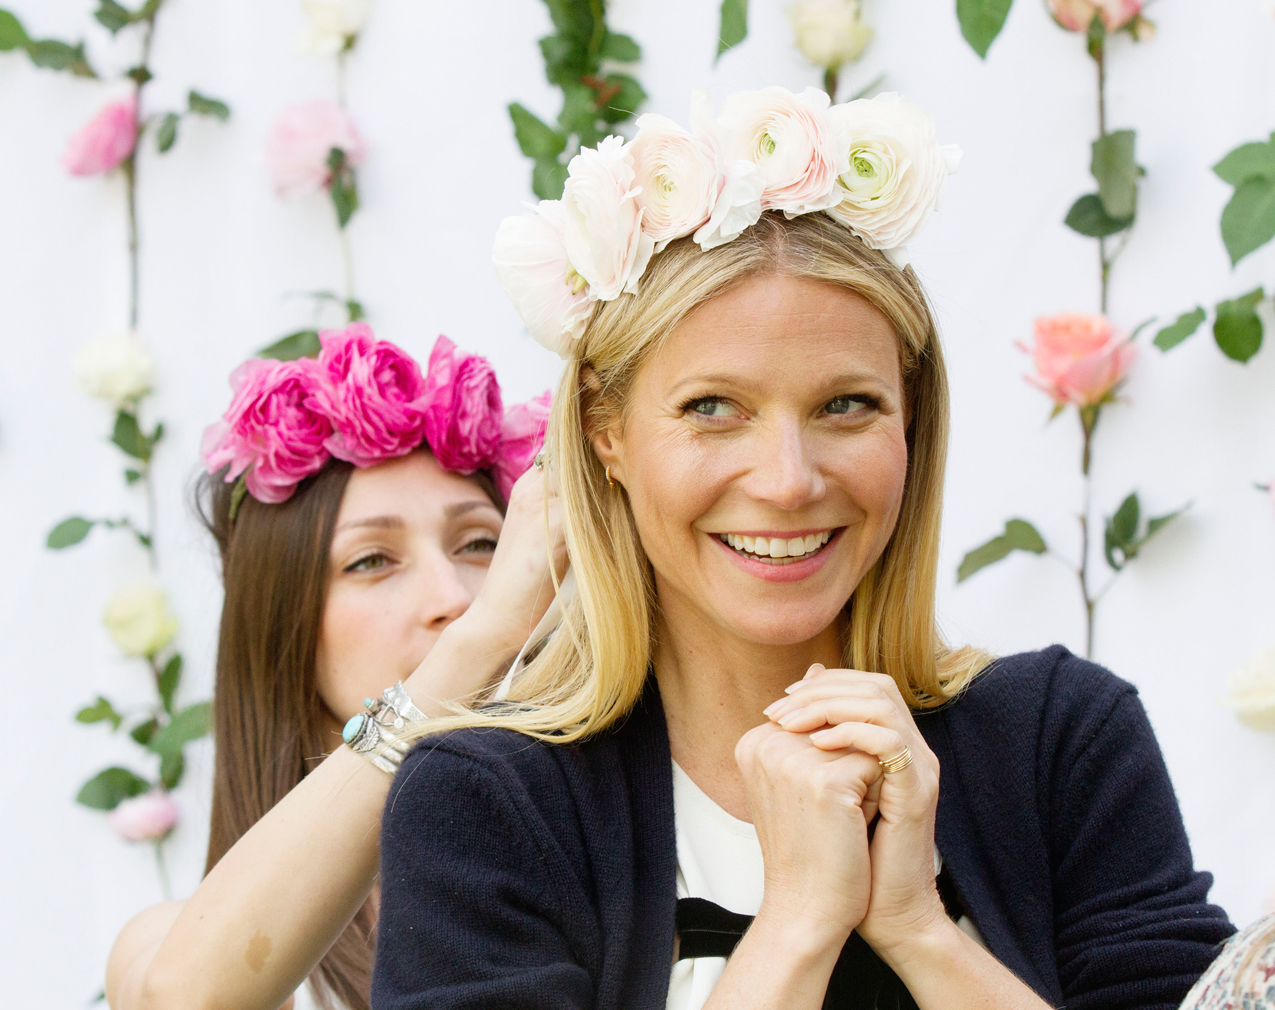 Gwyneth Paltrow Party - Lead